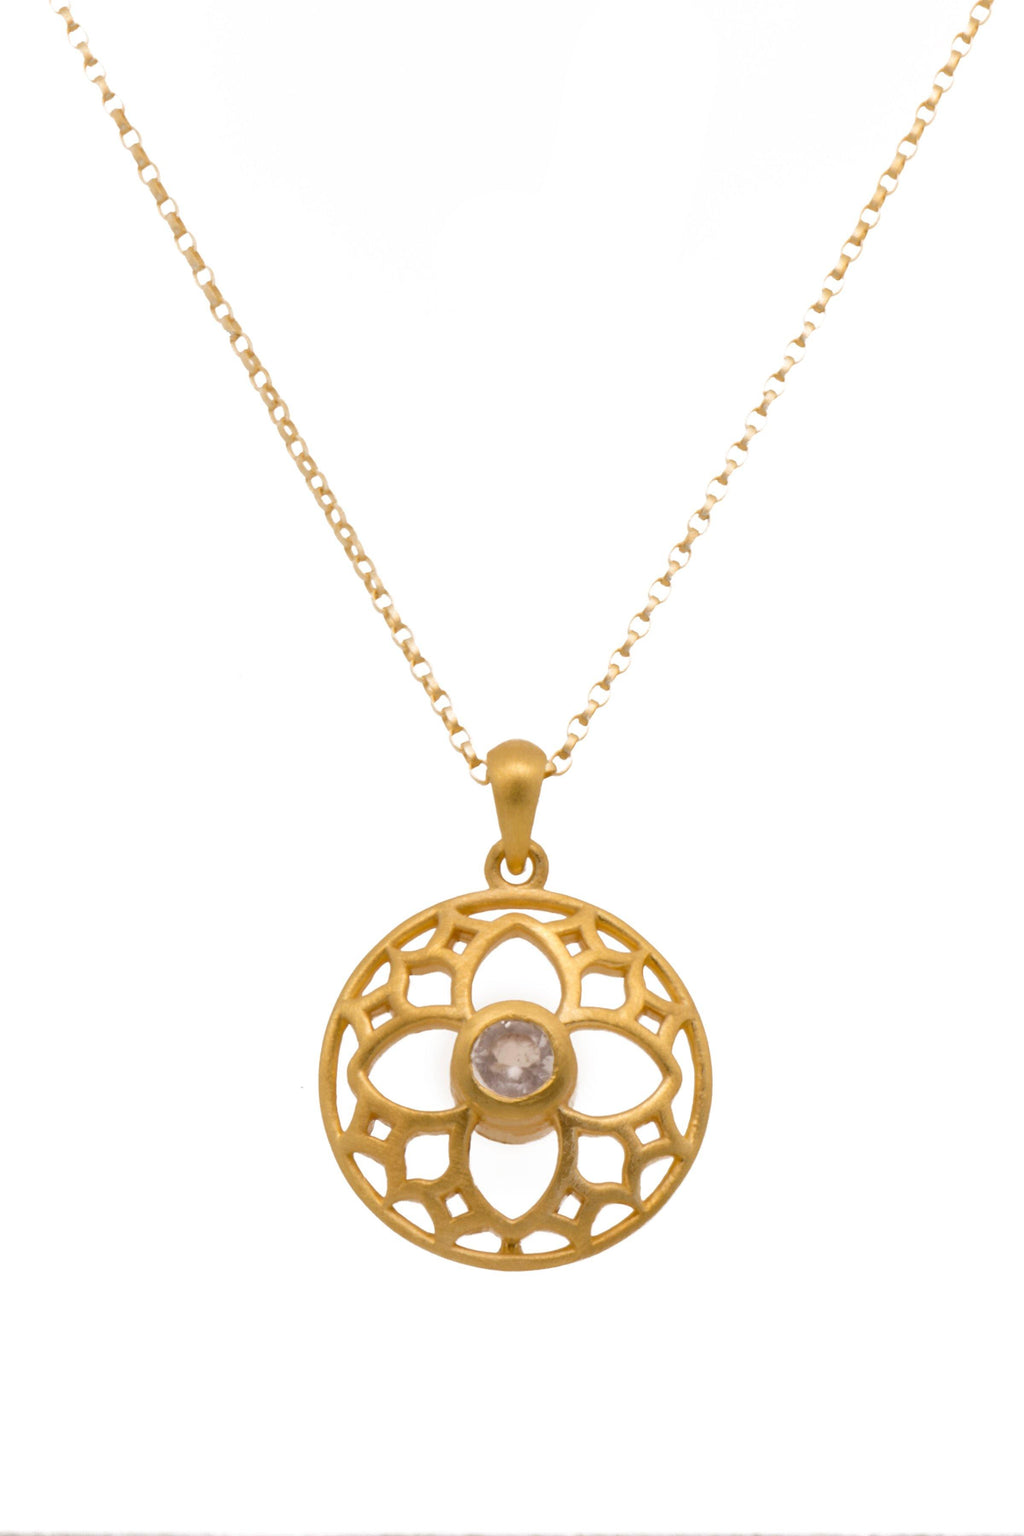 JOYFUL CIRCLE PENDANT SMALL ROSE QUARTZ 24K GOLD VERMEIL - Joyla Jewelry